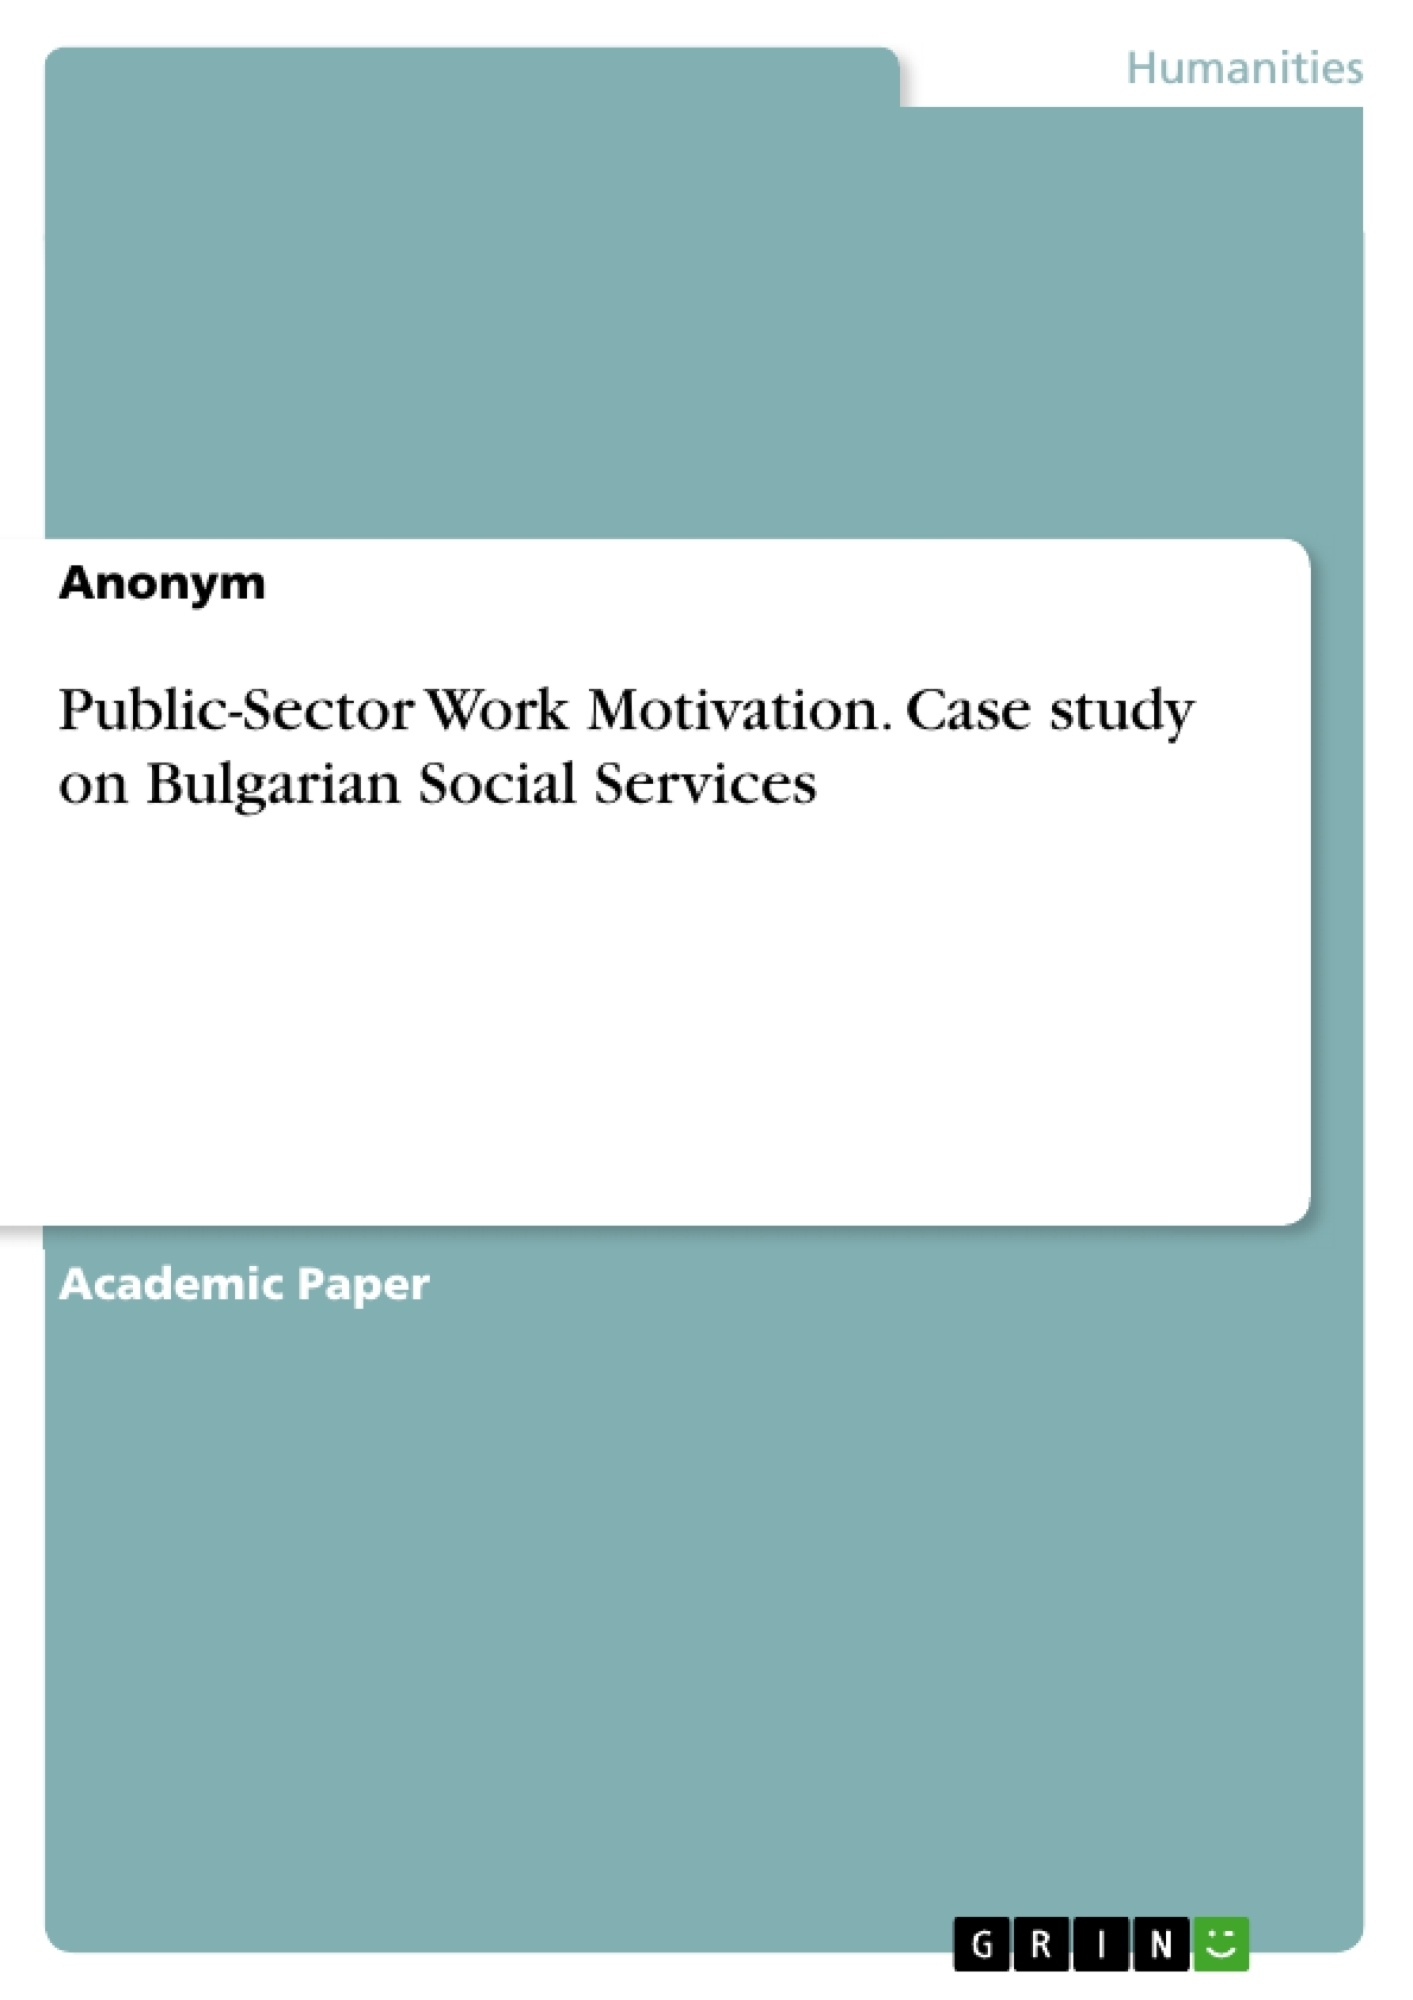 Title: Public-Sector Work Motivation. Case study on Bulgarian Social Services